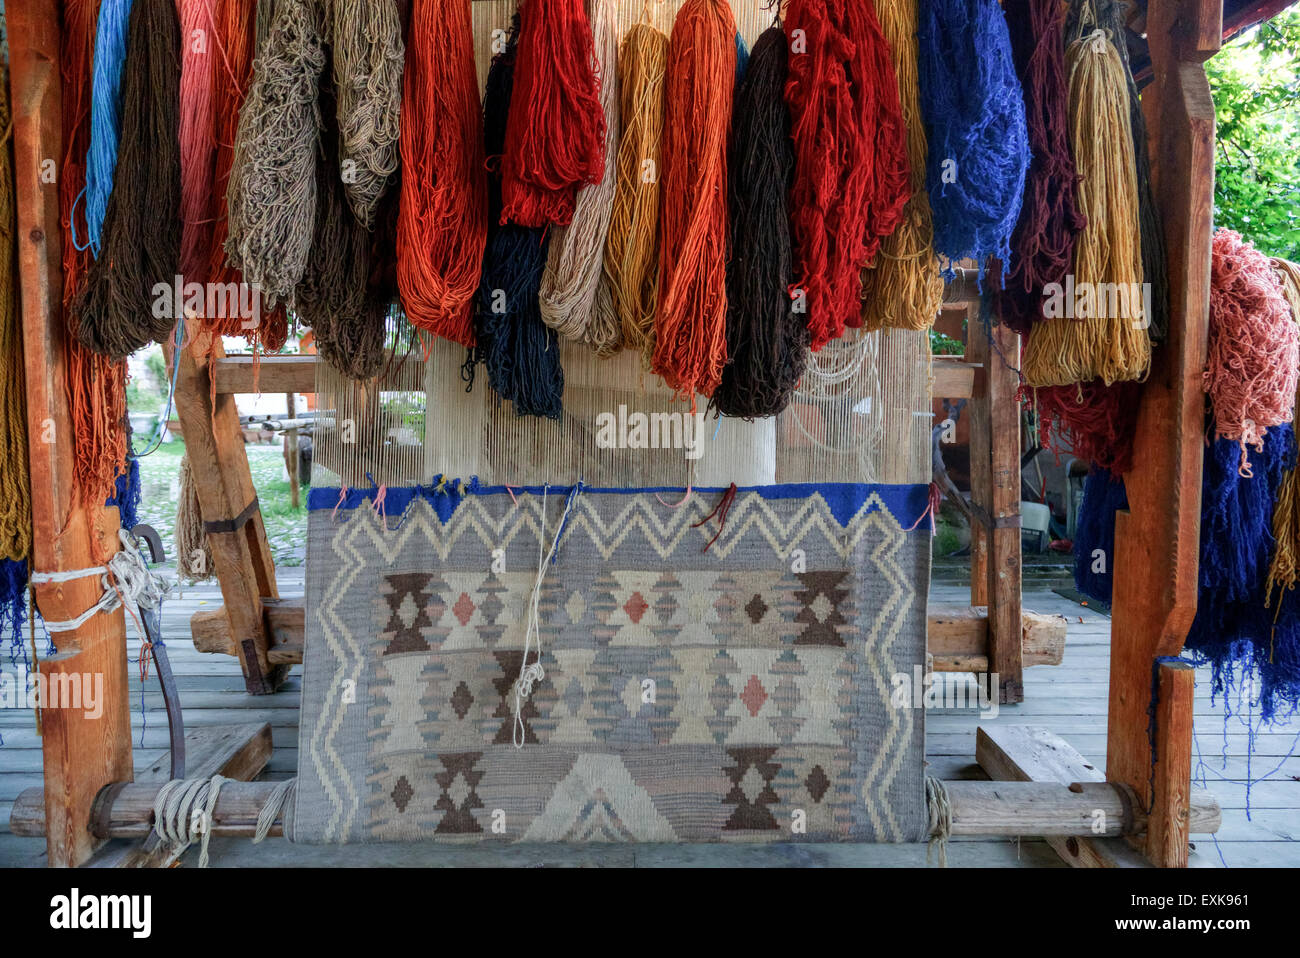 weaving stockfotos weaving bilder alamy. Black Bedroom Furniture Sets. Home Design Ideas